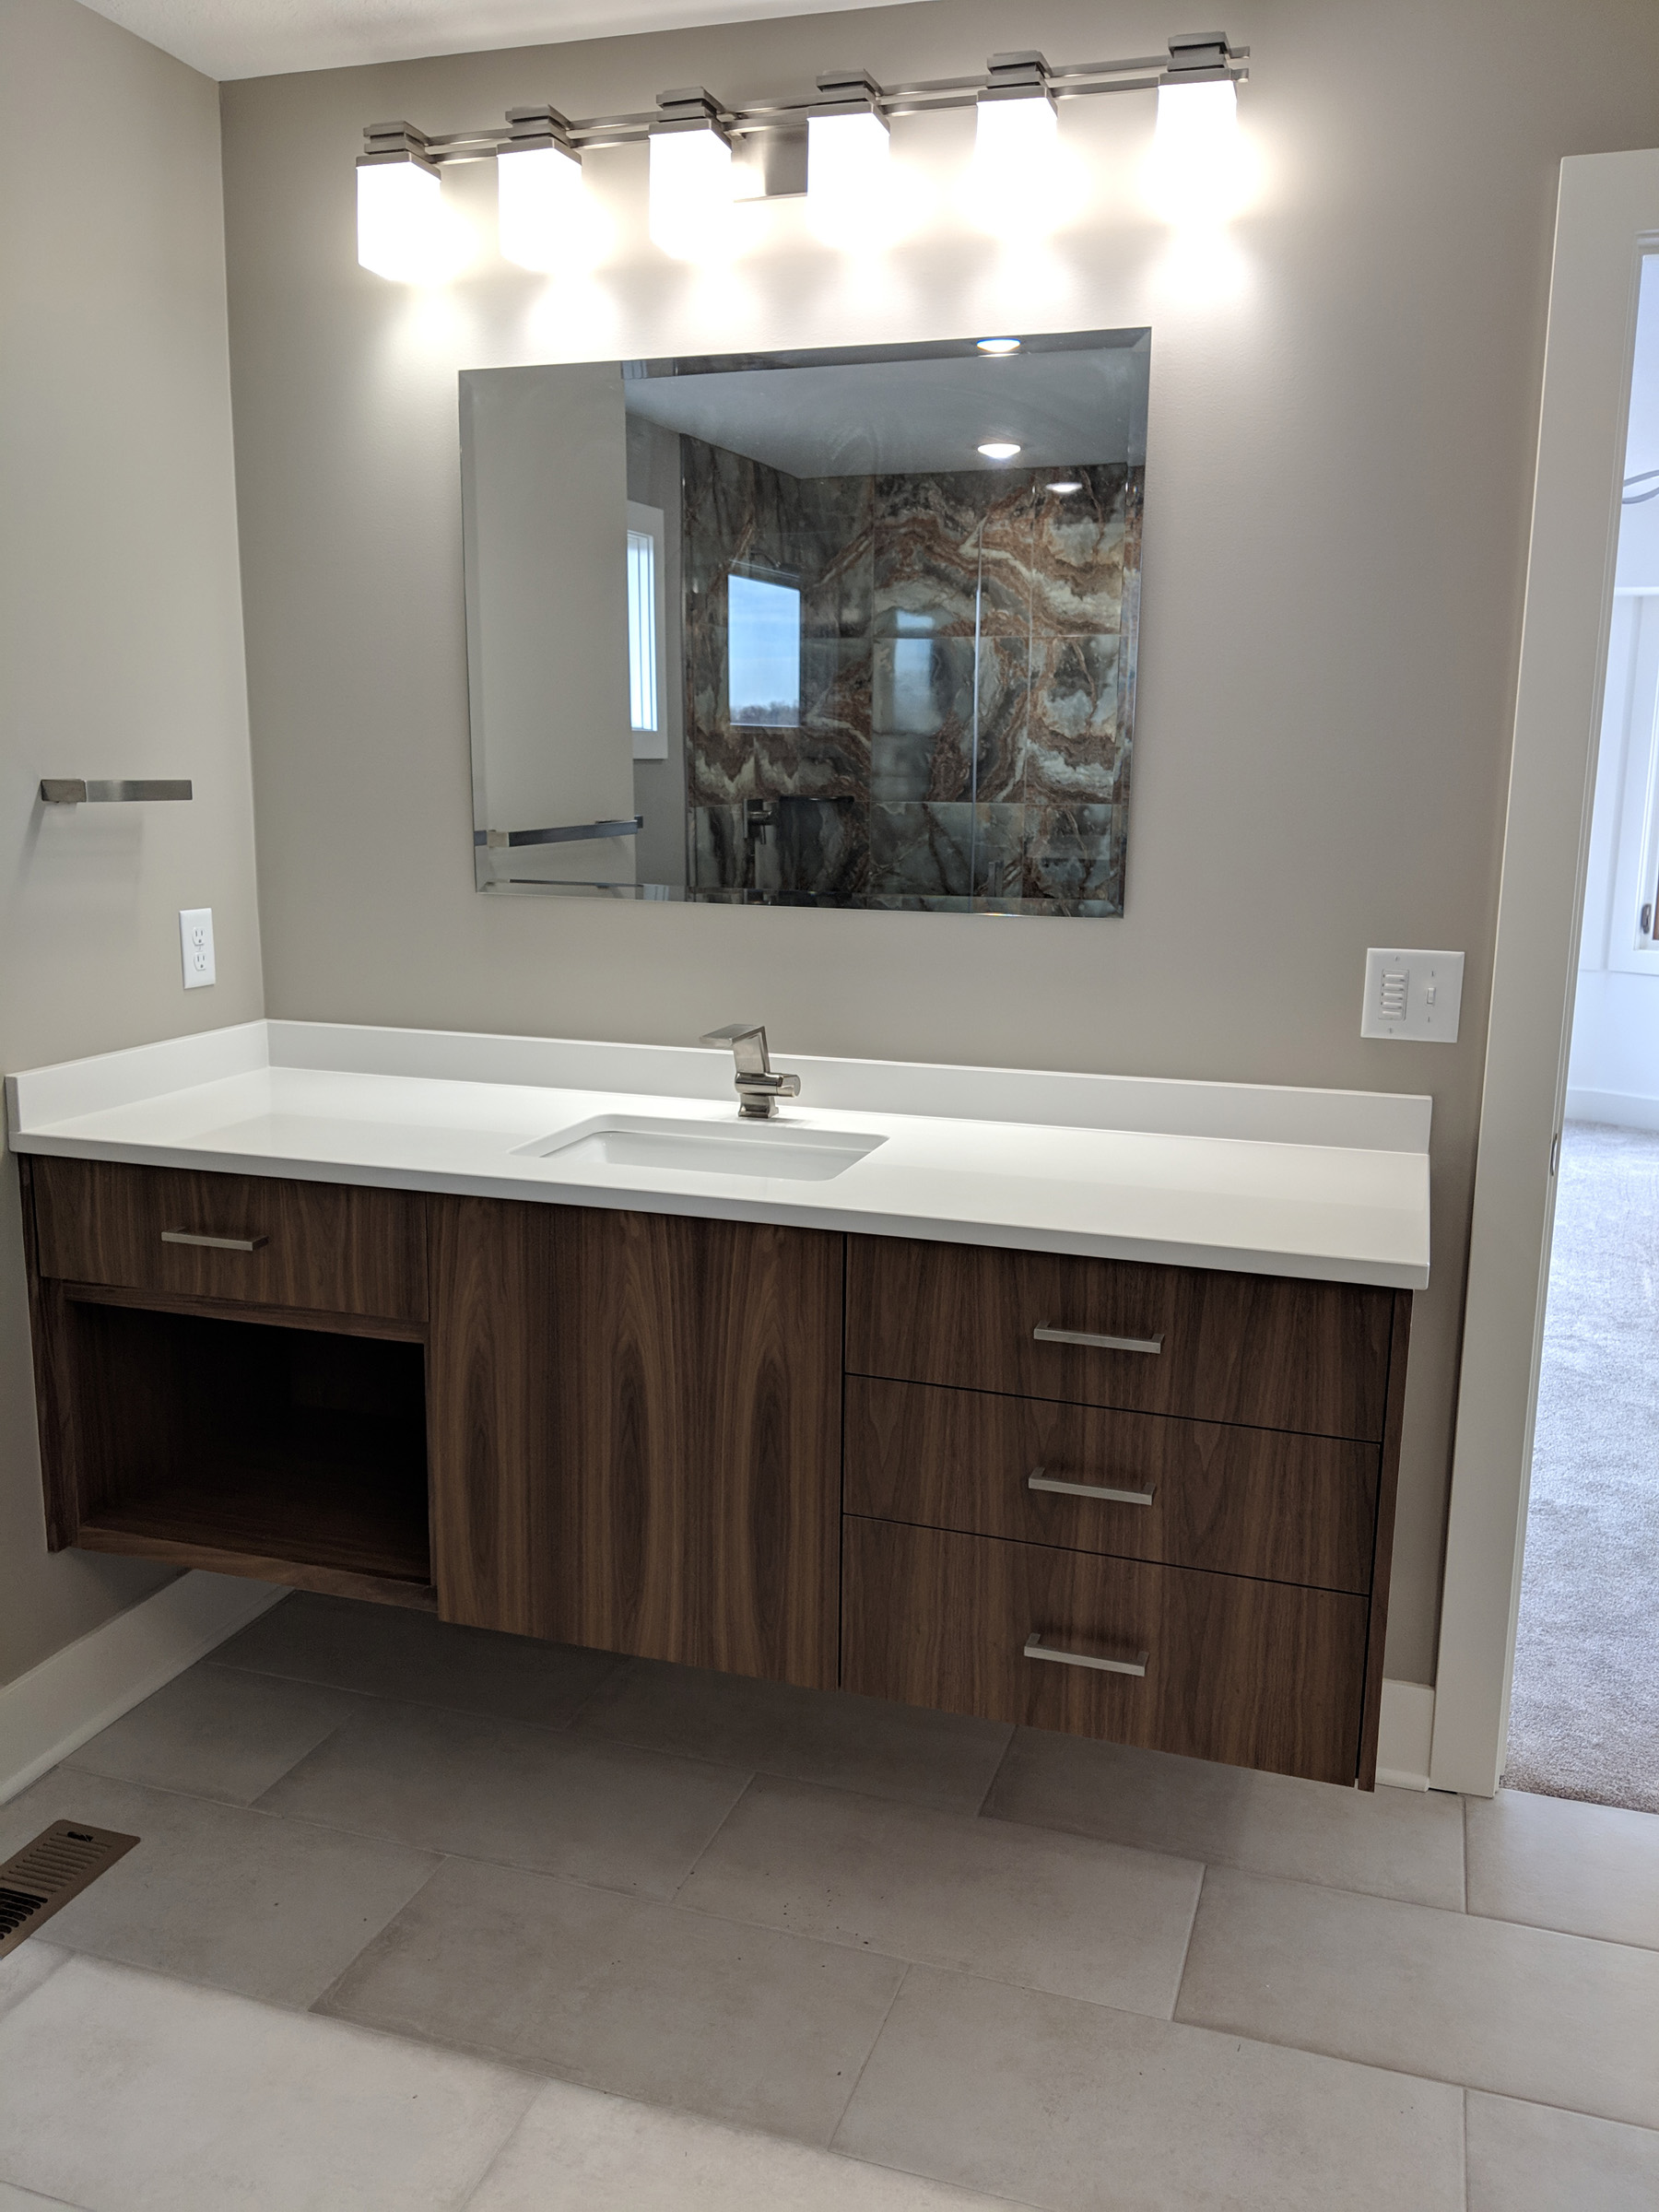 Floating vanity with storage